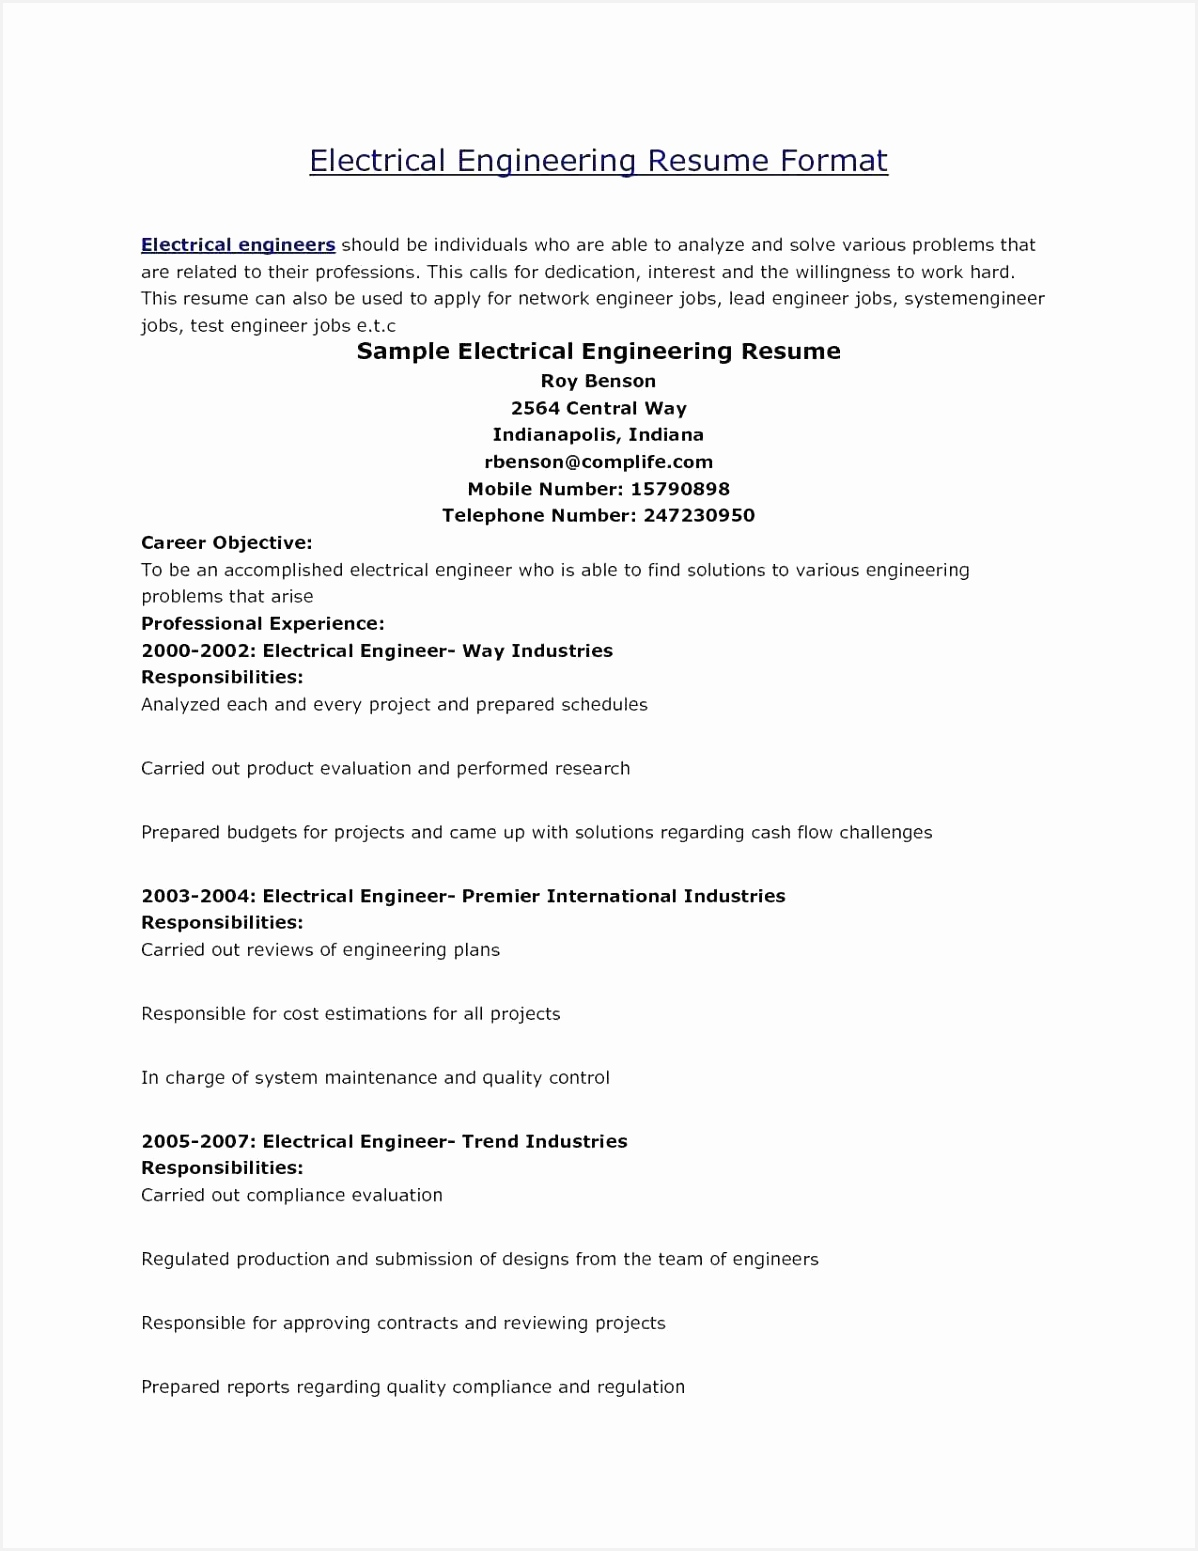 Contract Stress Engineer Sample Resume Nljaa Beautiful Resume format for Design Engineer In Mechanical Fresh Sample Resume15511198